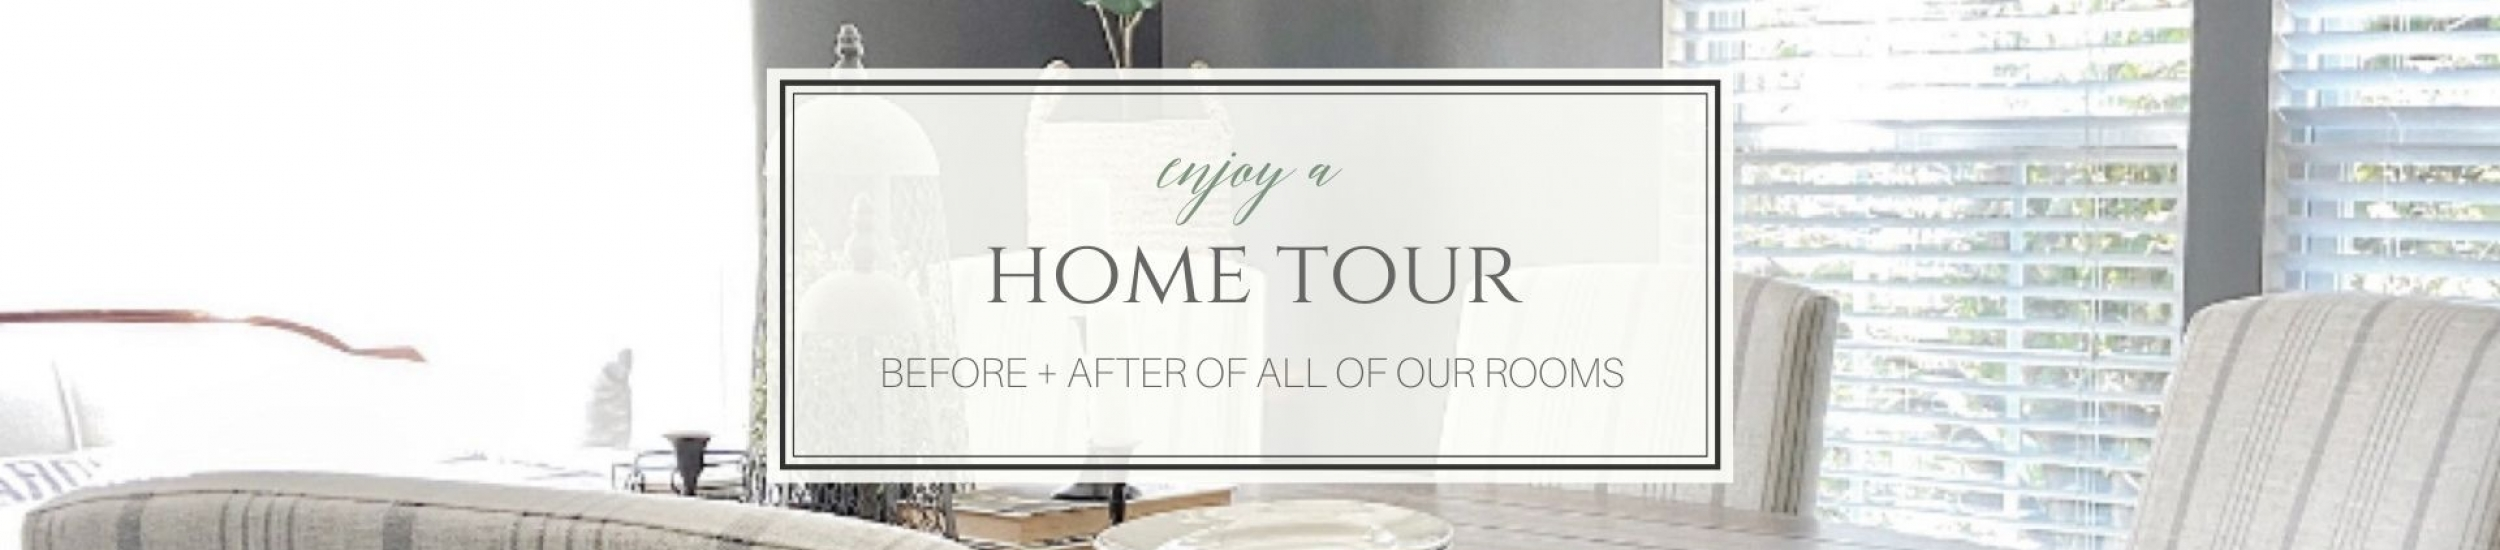 Farmhouse Decor Ideas at Snazzy Little Things